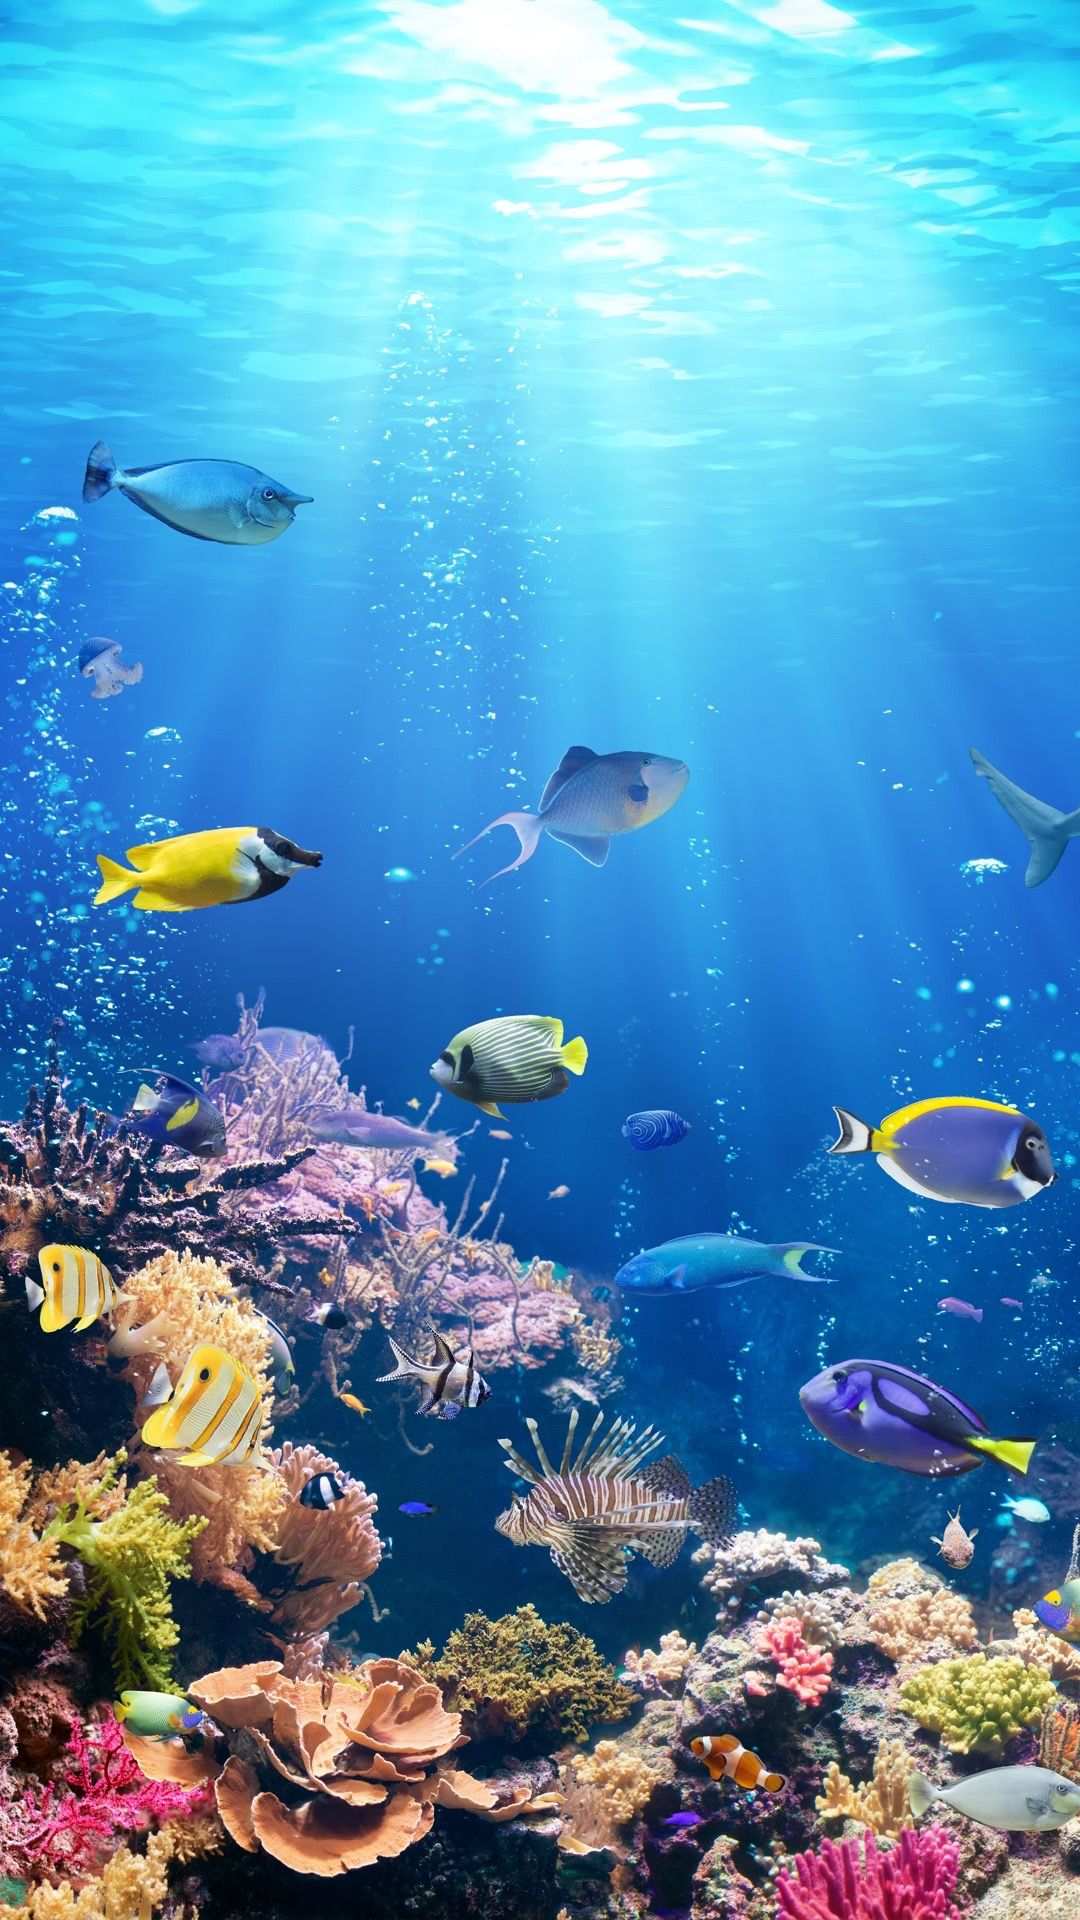 Pin By Pamela On Iwallpapers With Images Sea Life Wallpaper